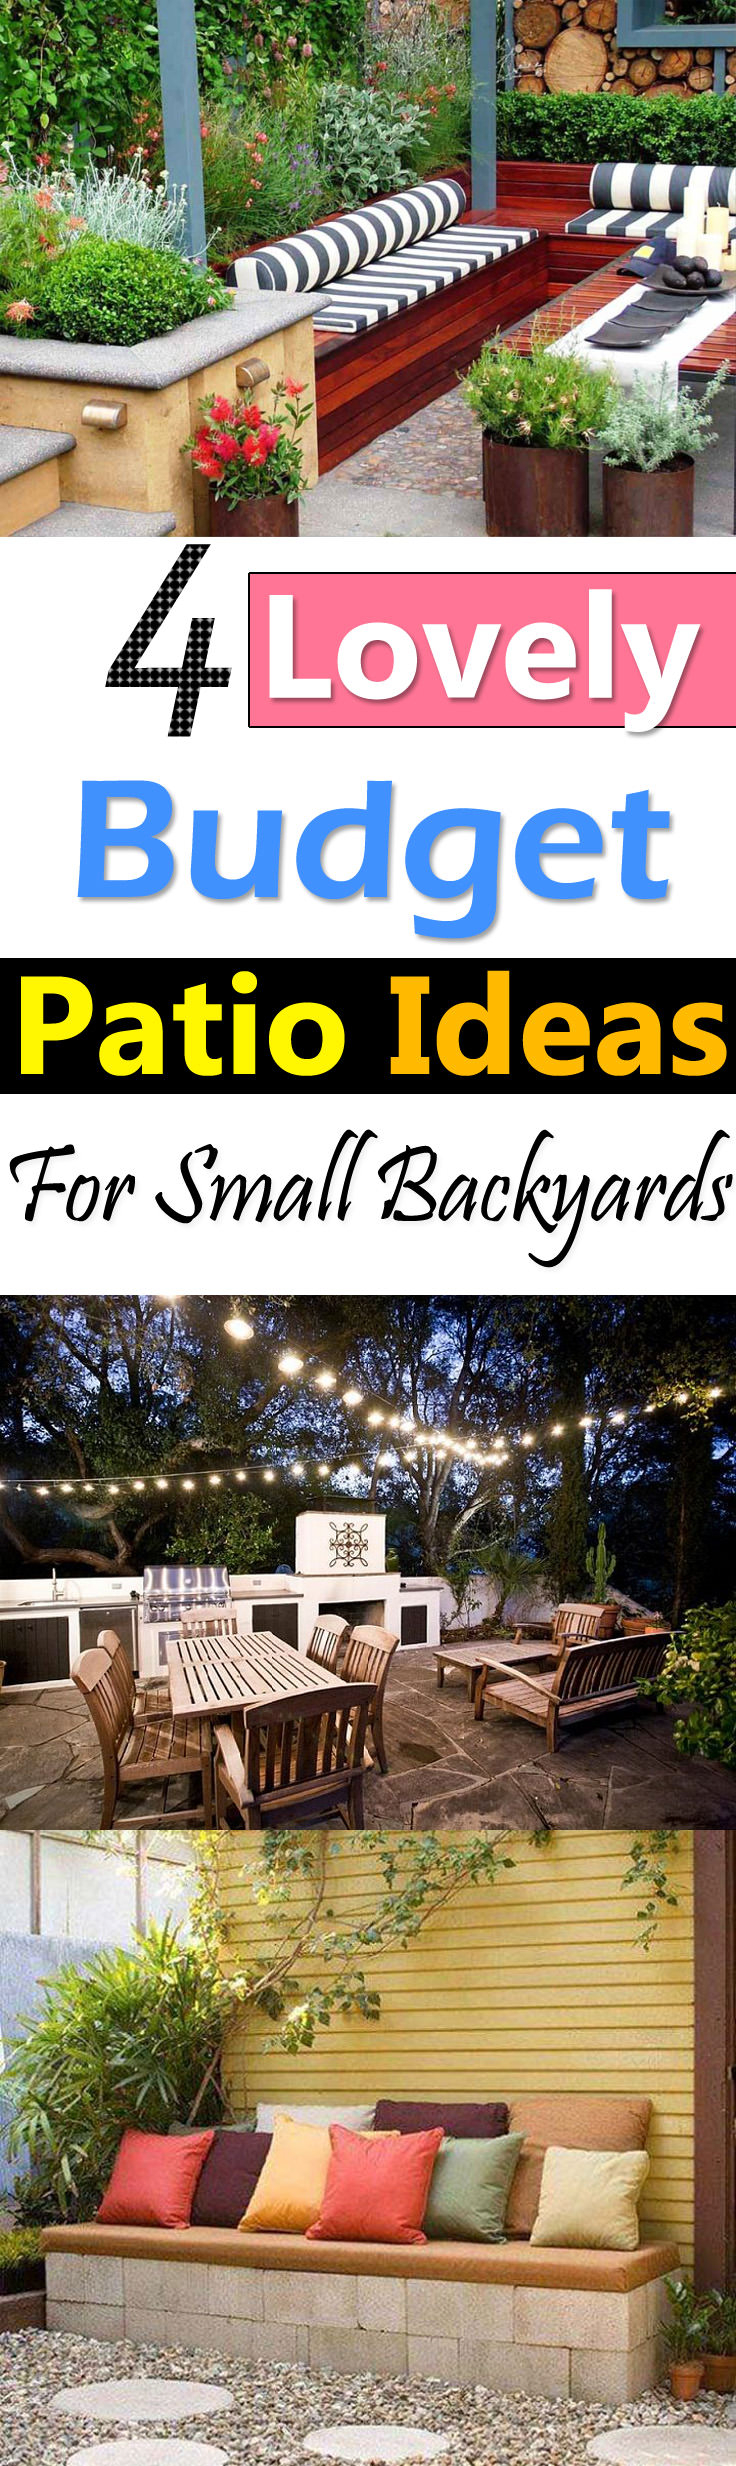 4 Lovely Budget Patio Ideas For Small Backyards Balcony regarding Small Backyard Patio Ideas